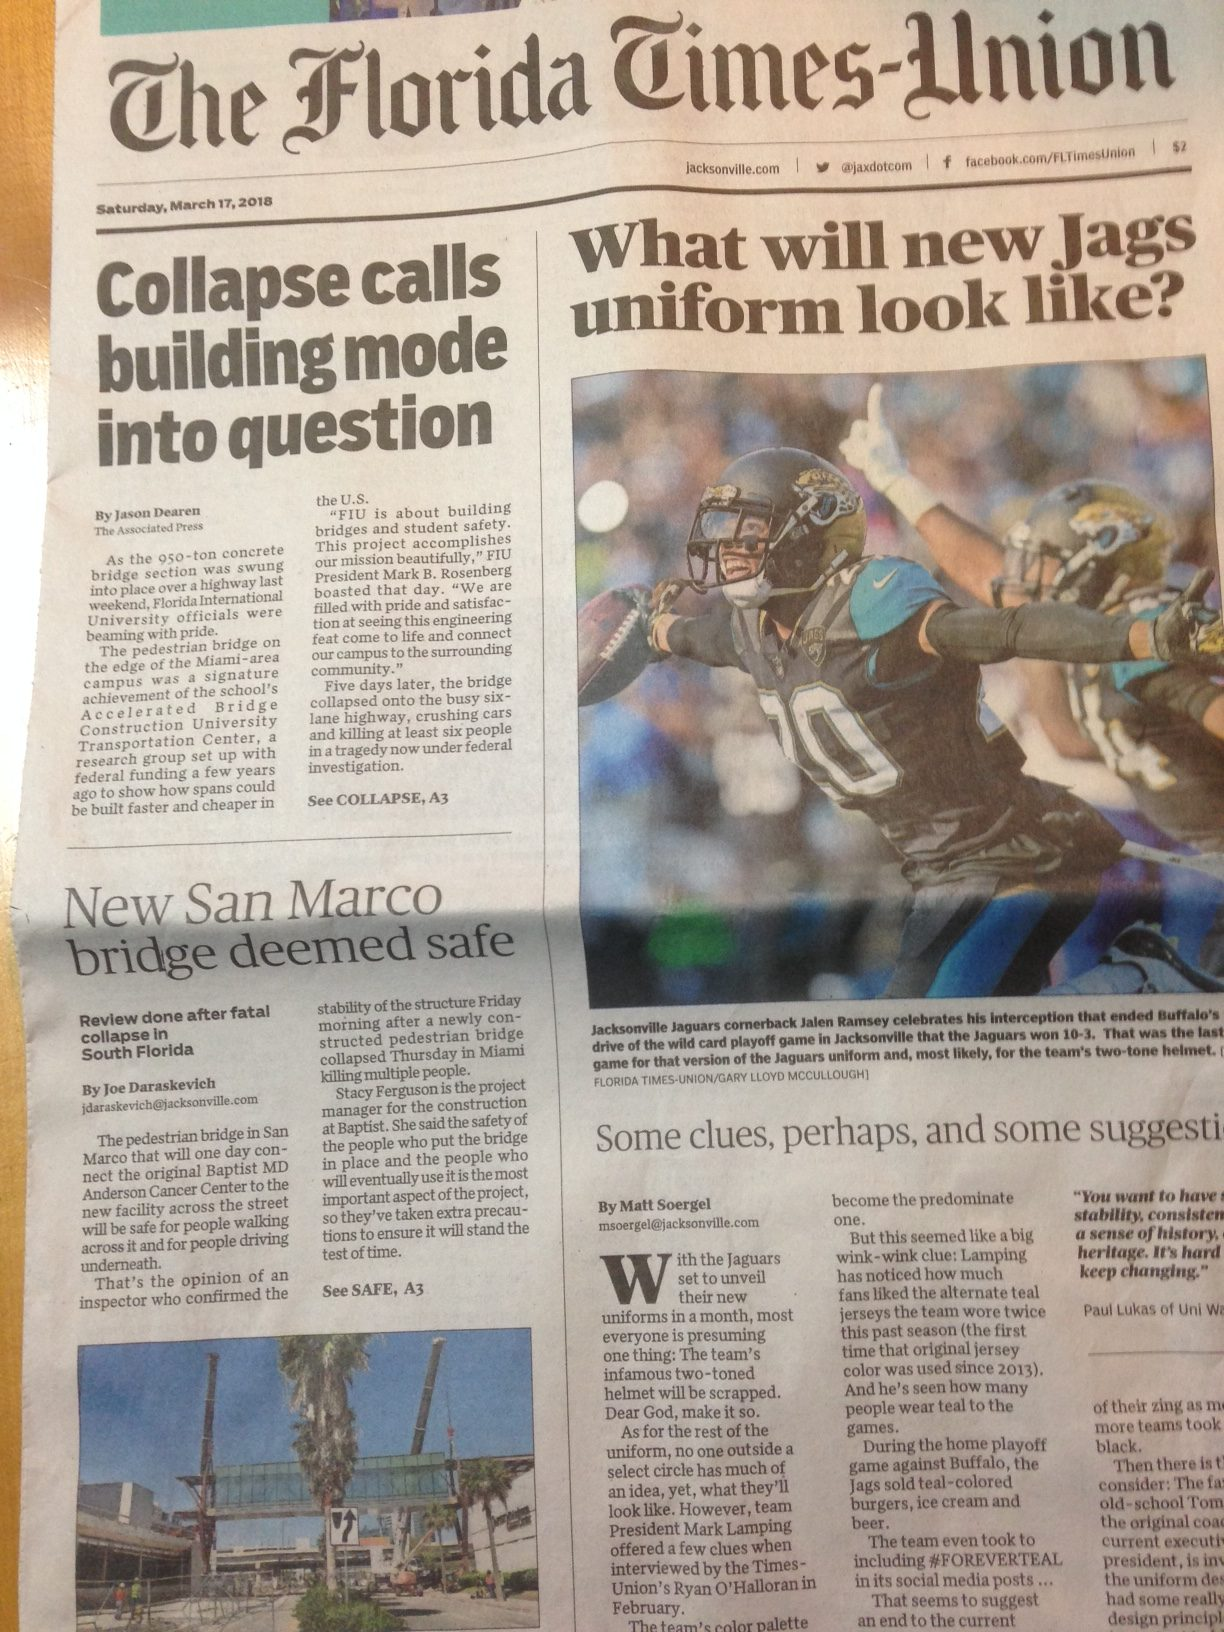 The Times-Union Lays Another Editorial Egg Inspiring The Jaguars PR Staff To Celebrate